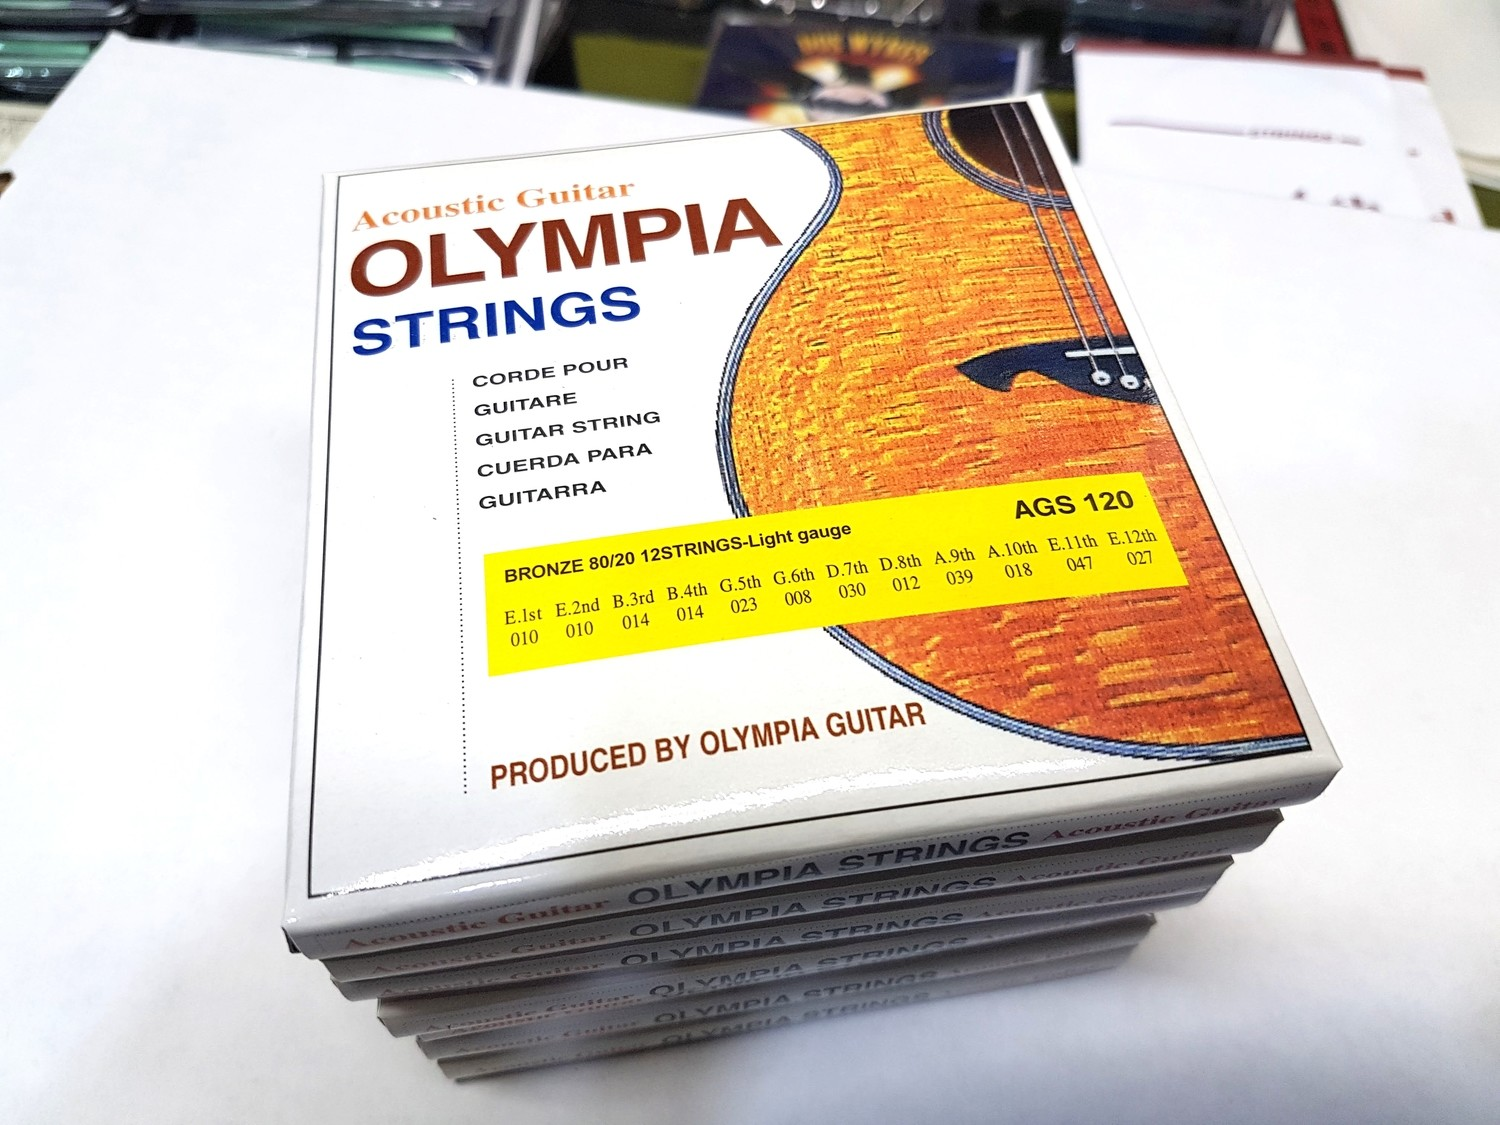 7 Packs 12 Strings Acoustic OLYMPIA AGS-120 BRONZE WOUND LIGHT GUAGE 12 STRING ACOUSTIC GUITAR STRING